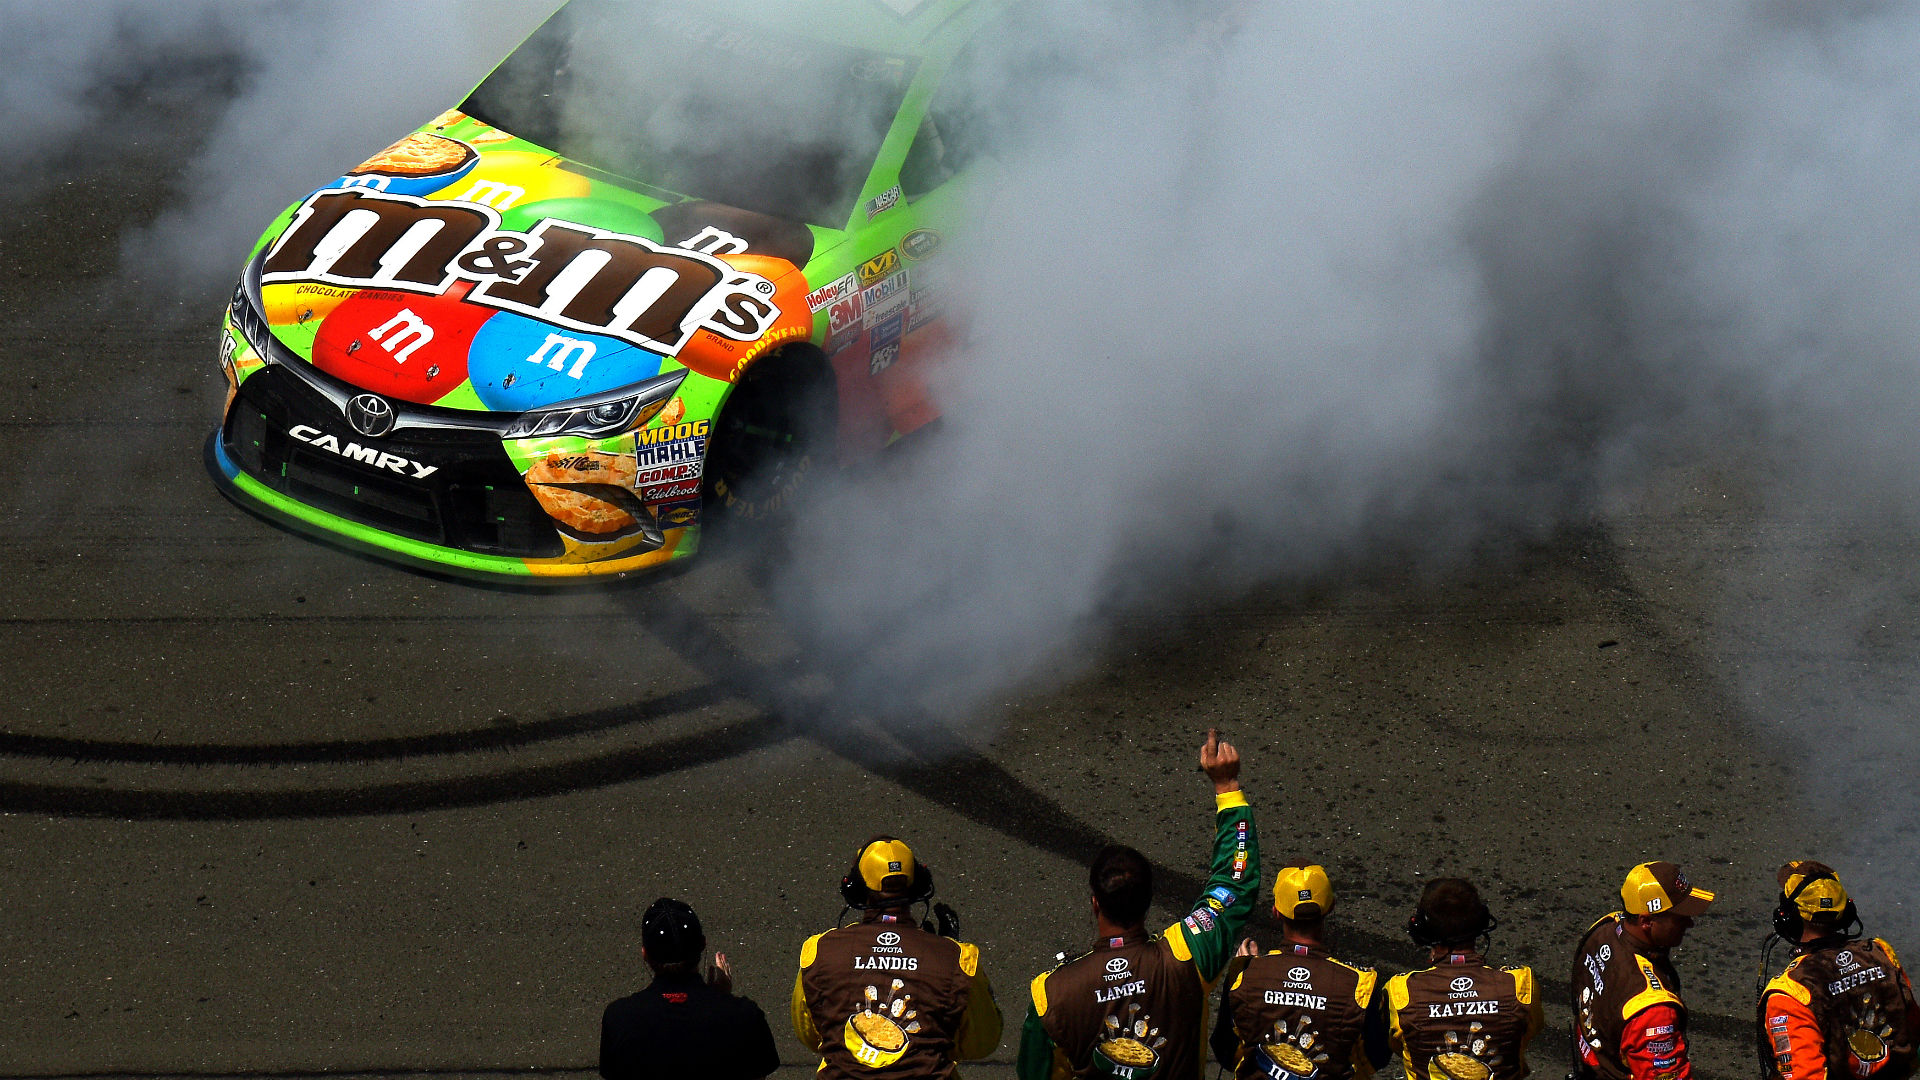 Kyle-Busch-062815-FTR-Getty.jpg